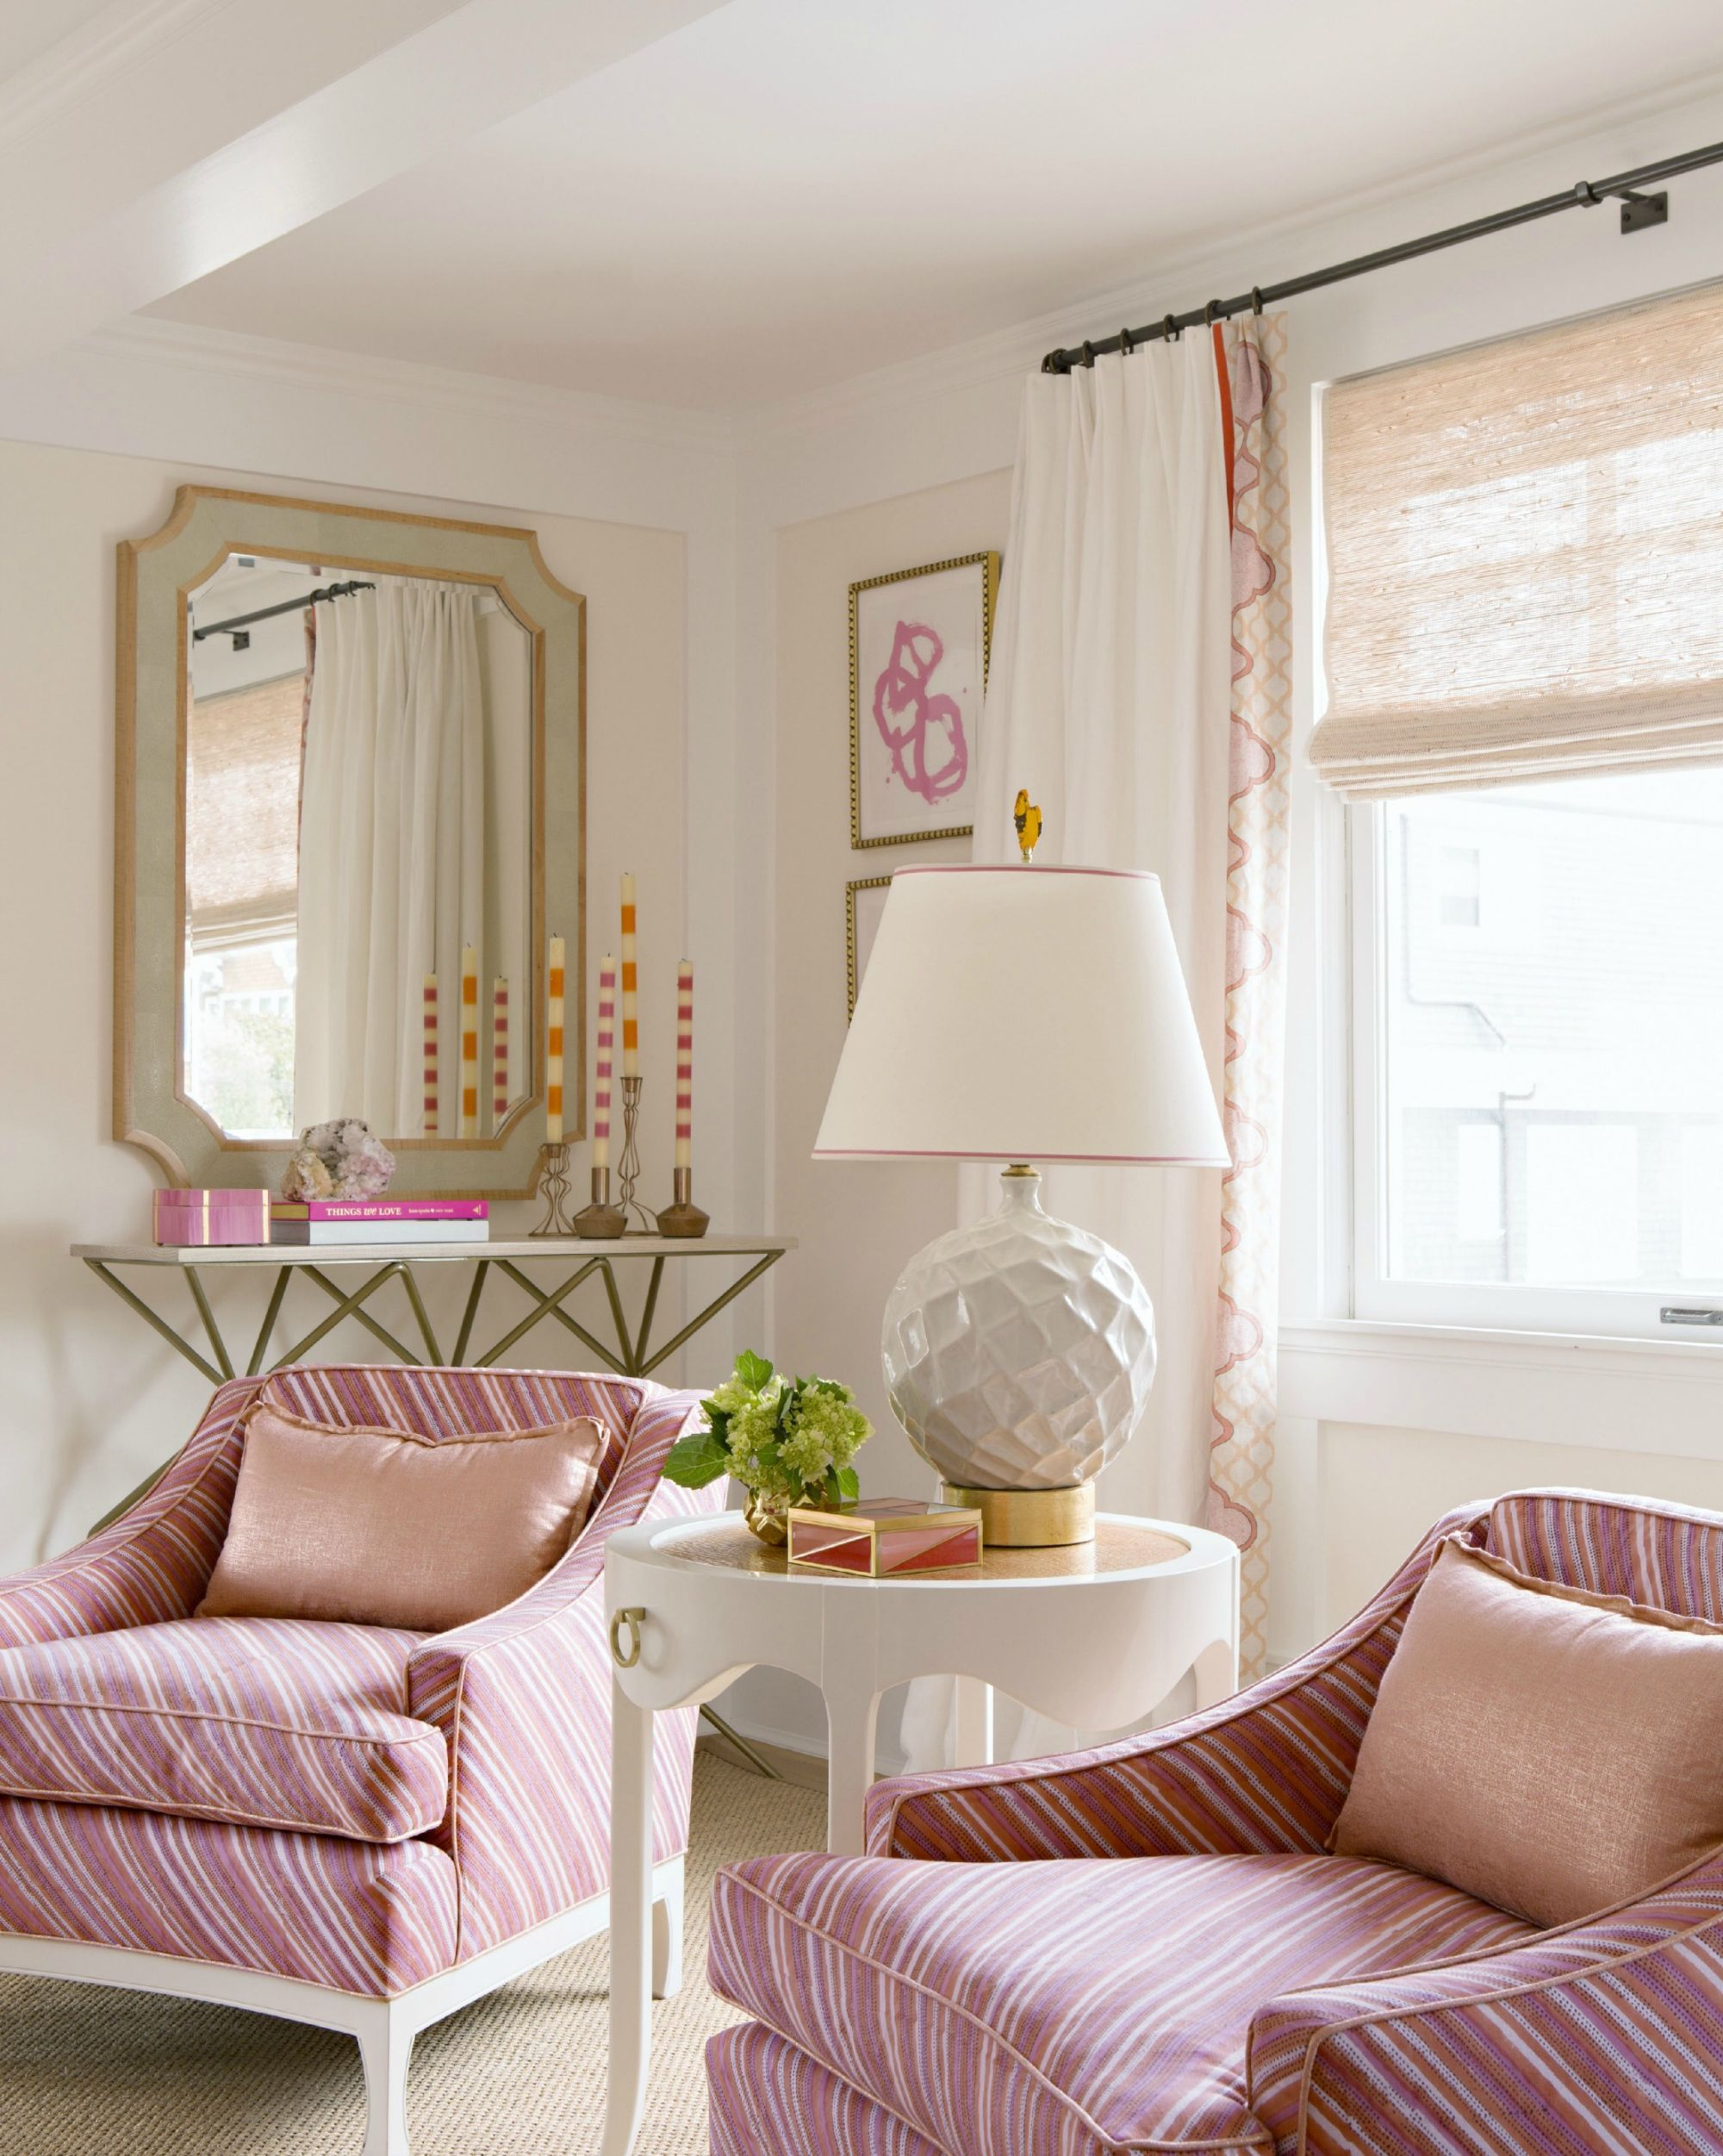 34 Window Treatment Ideas That'll Dramatically Improve Your View